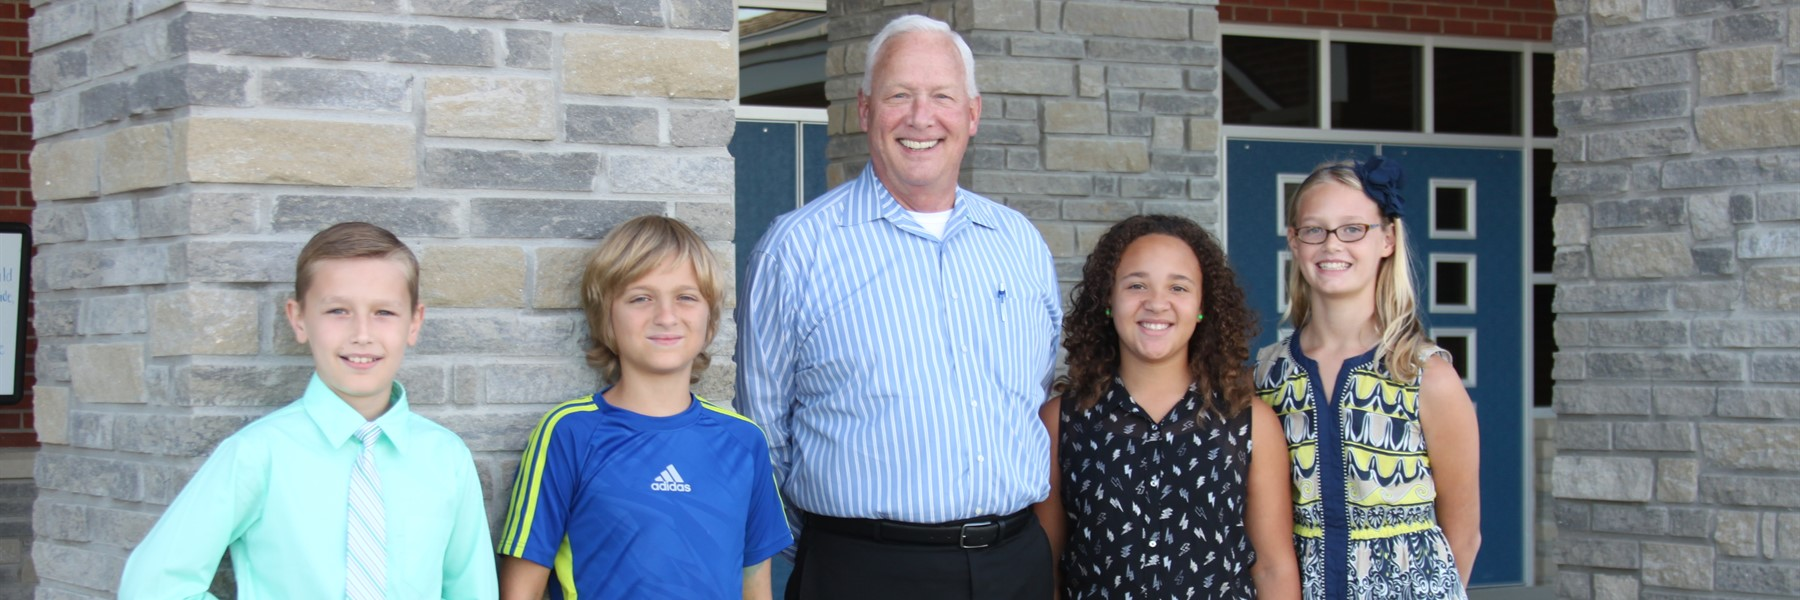 Mayor conducts Student Council interviews at Lemons Mill